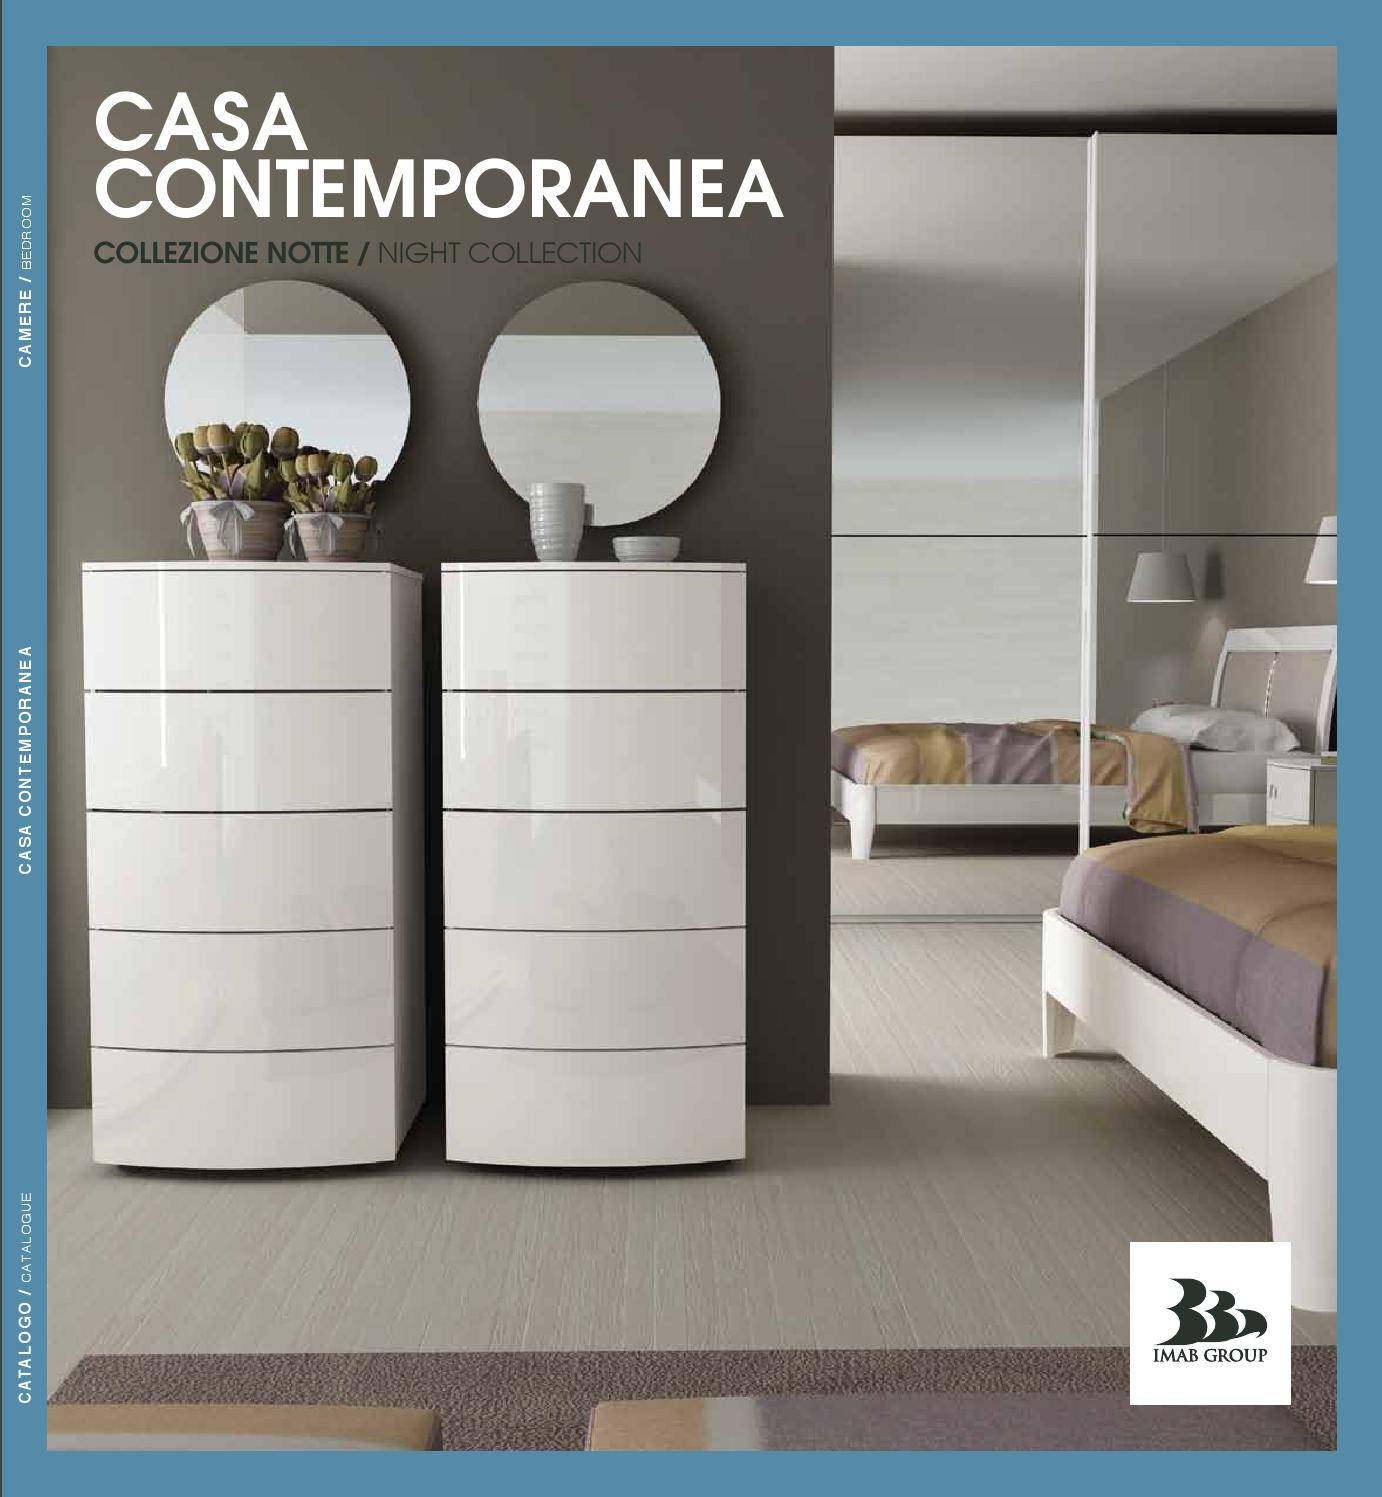 Imab casa contemporanea by kag meble i wiat o issuu for La casa contemporanea progetta la storia singola